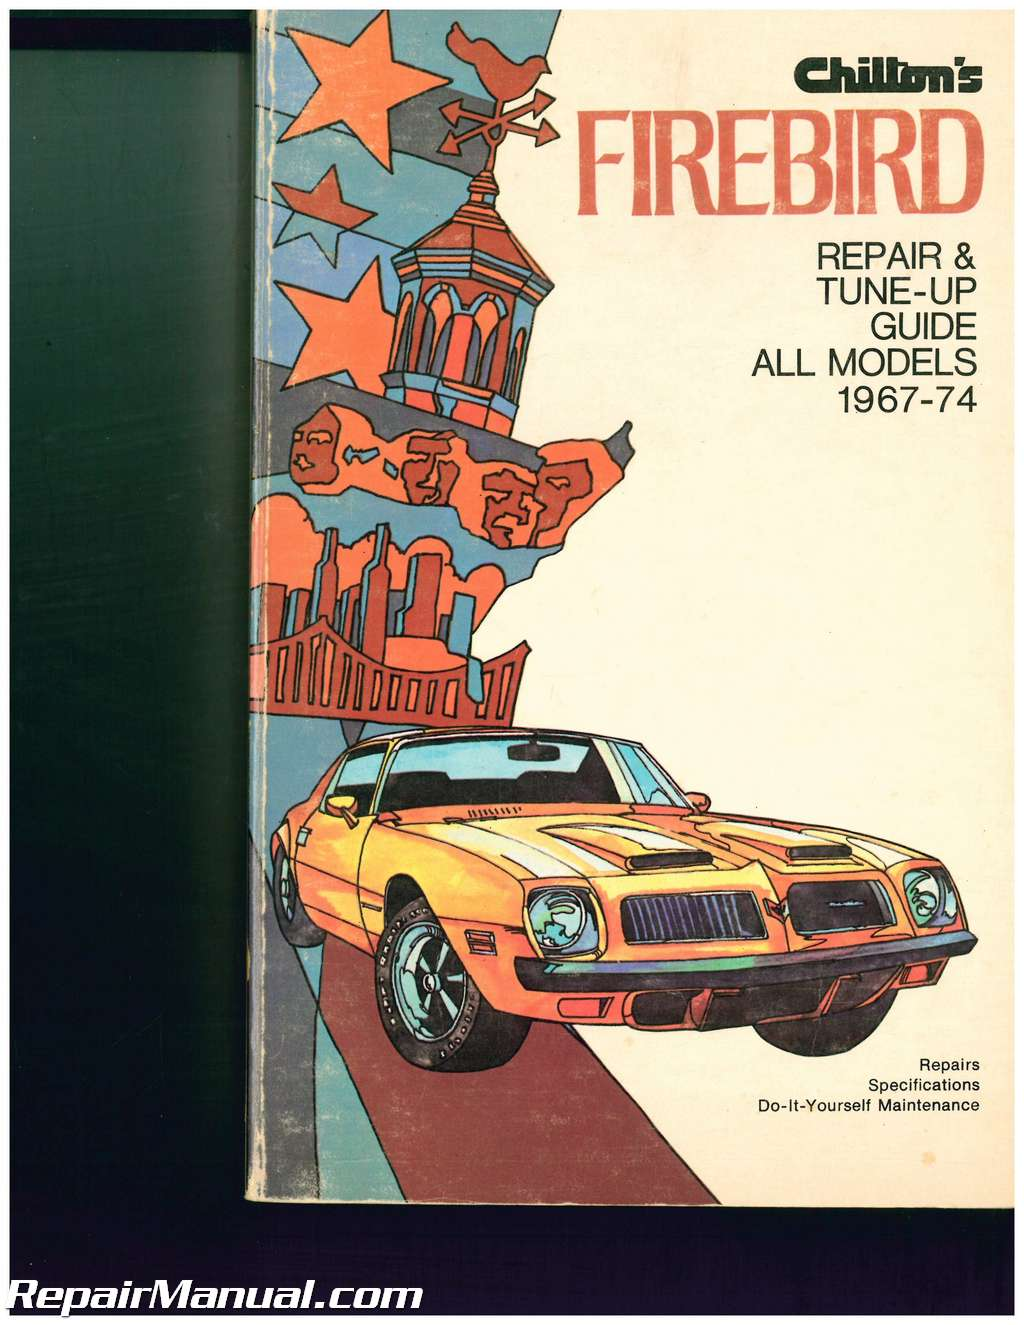 Used chilton firebird 1967 1974 repair manual solutioingenieria